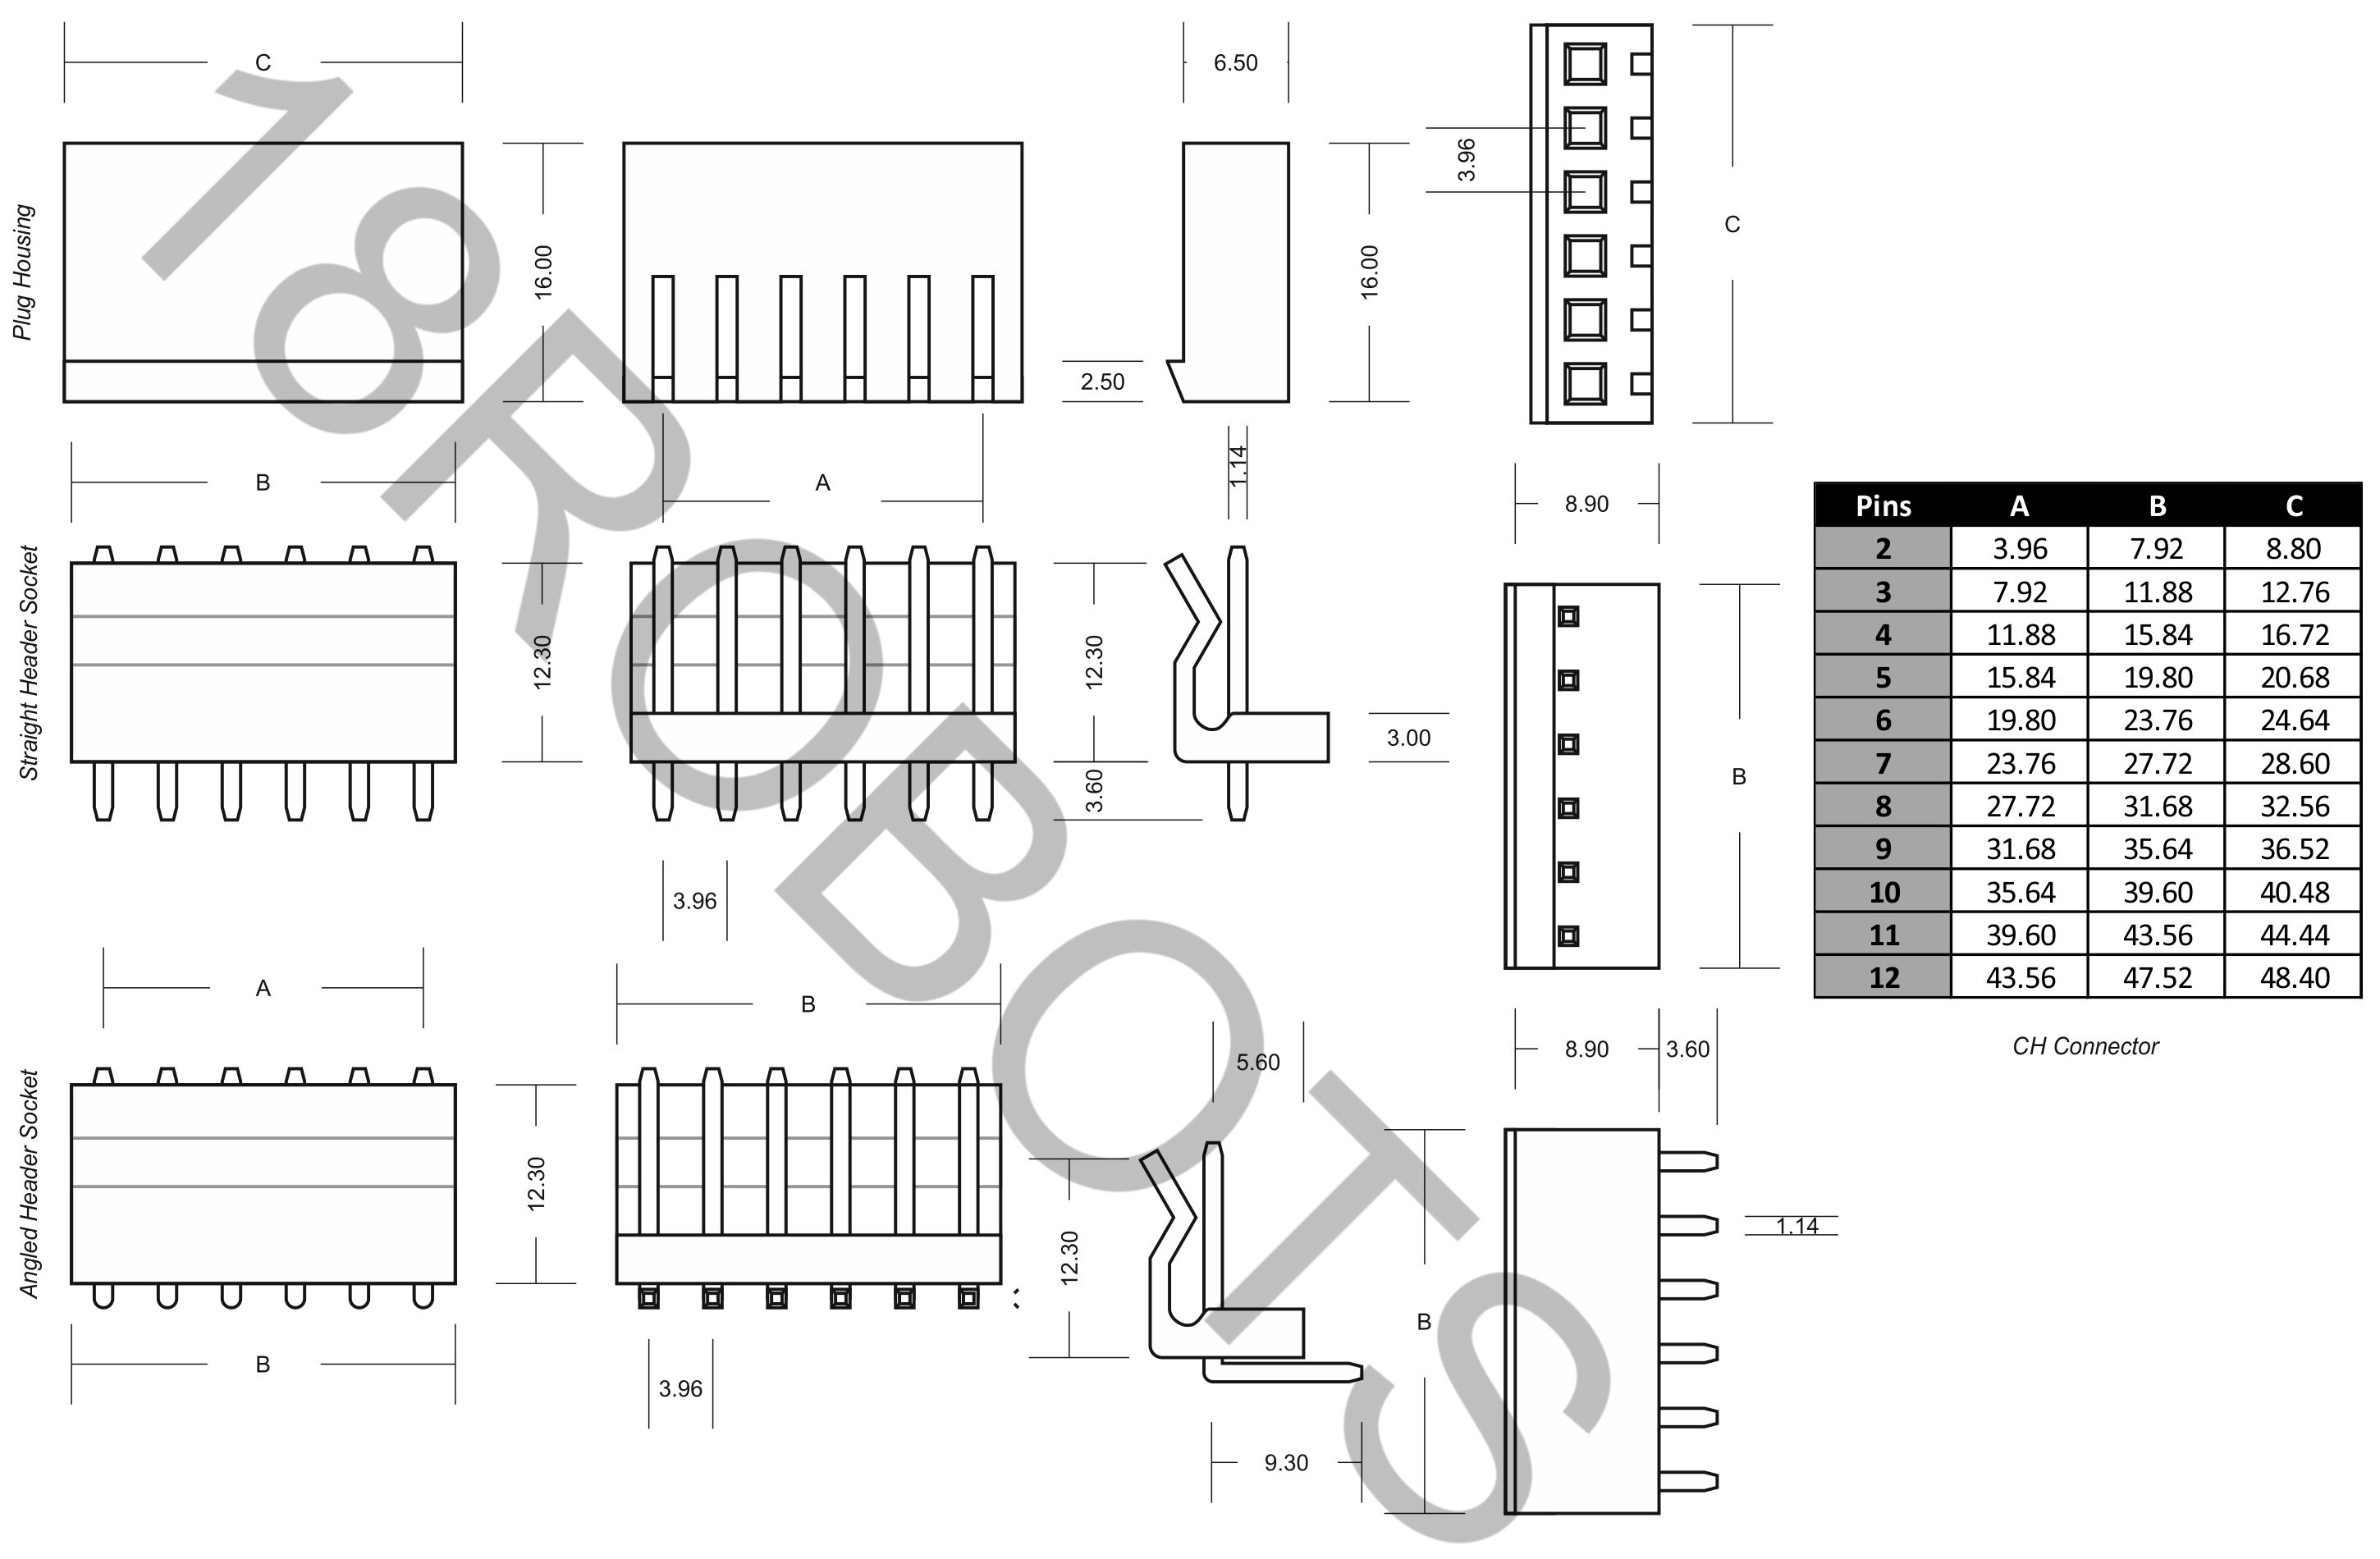 Ch 3 96mm Connector Sets 2 12 Pin Housing Header